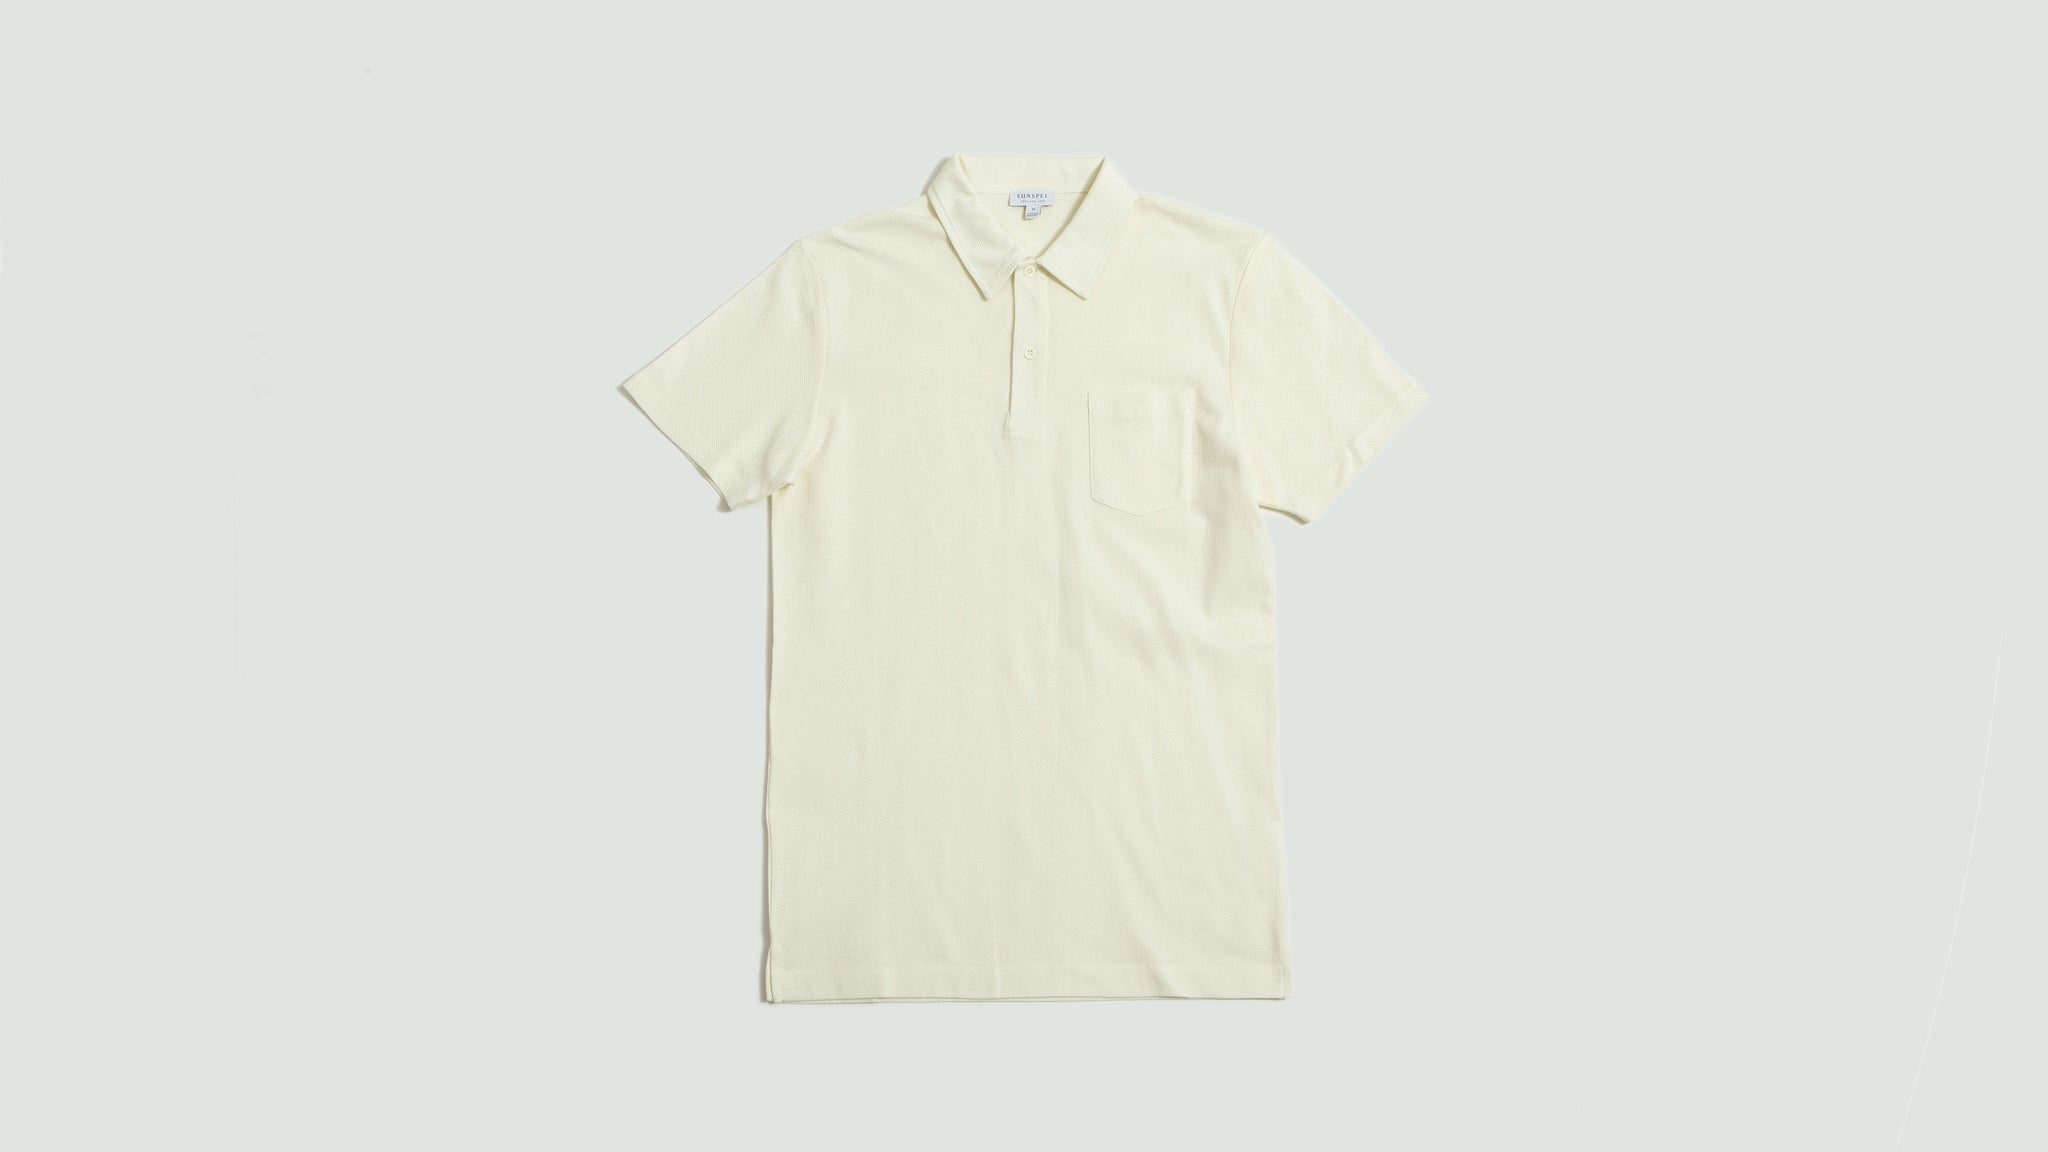 Sunspel. Riviera polo archive white